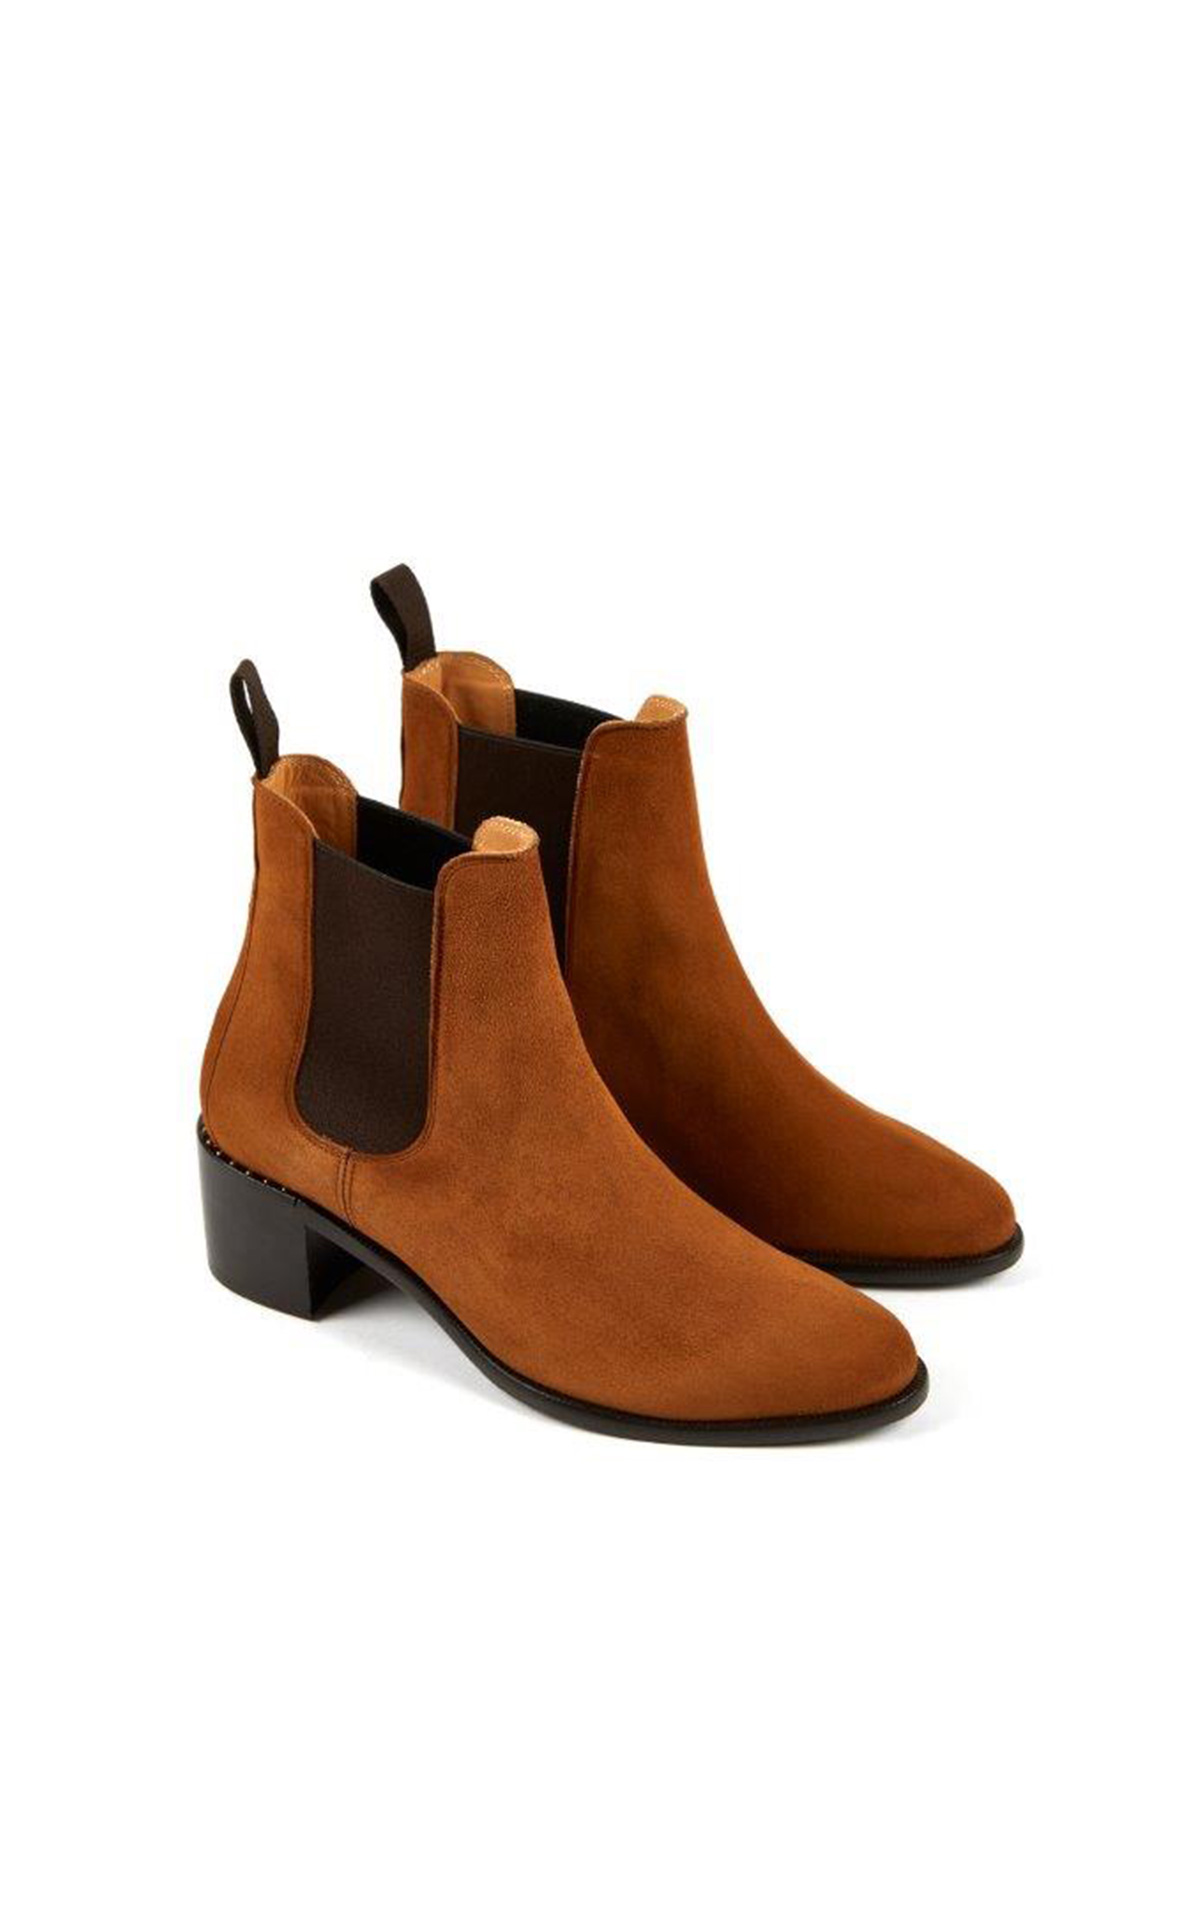 heschung Allure leather shoes in cashmere tobacco color la vallée village